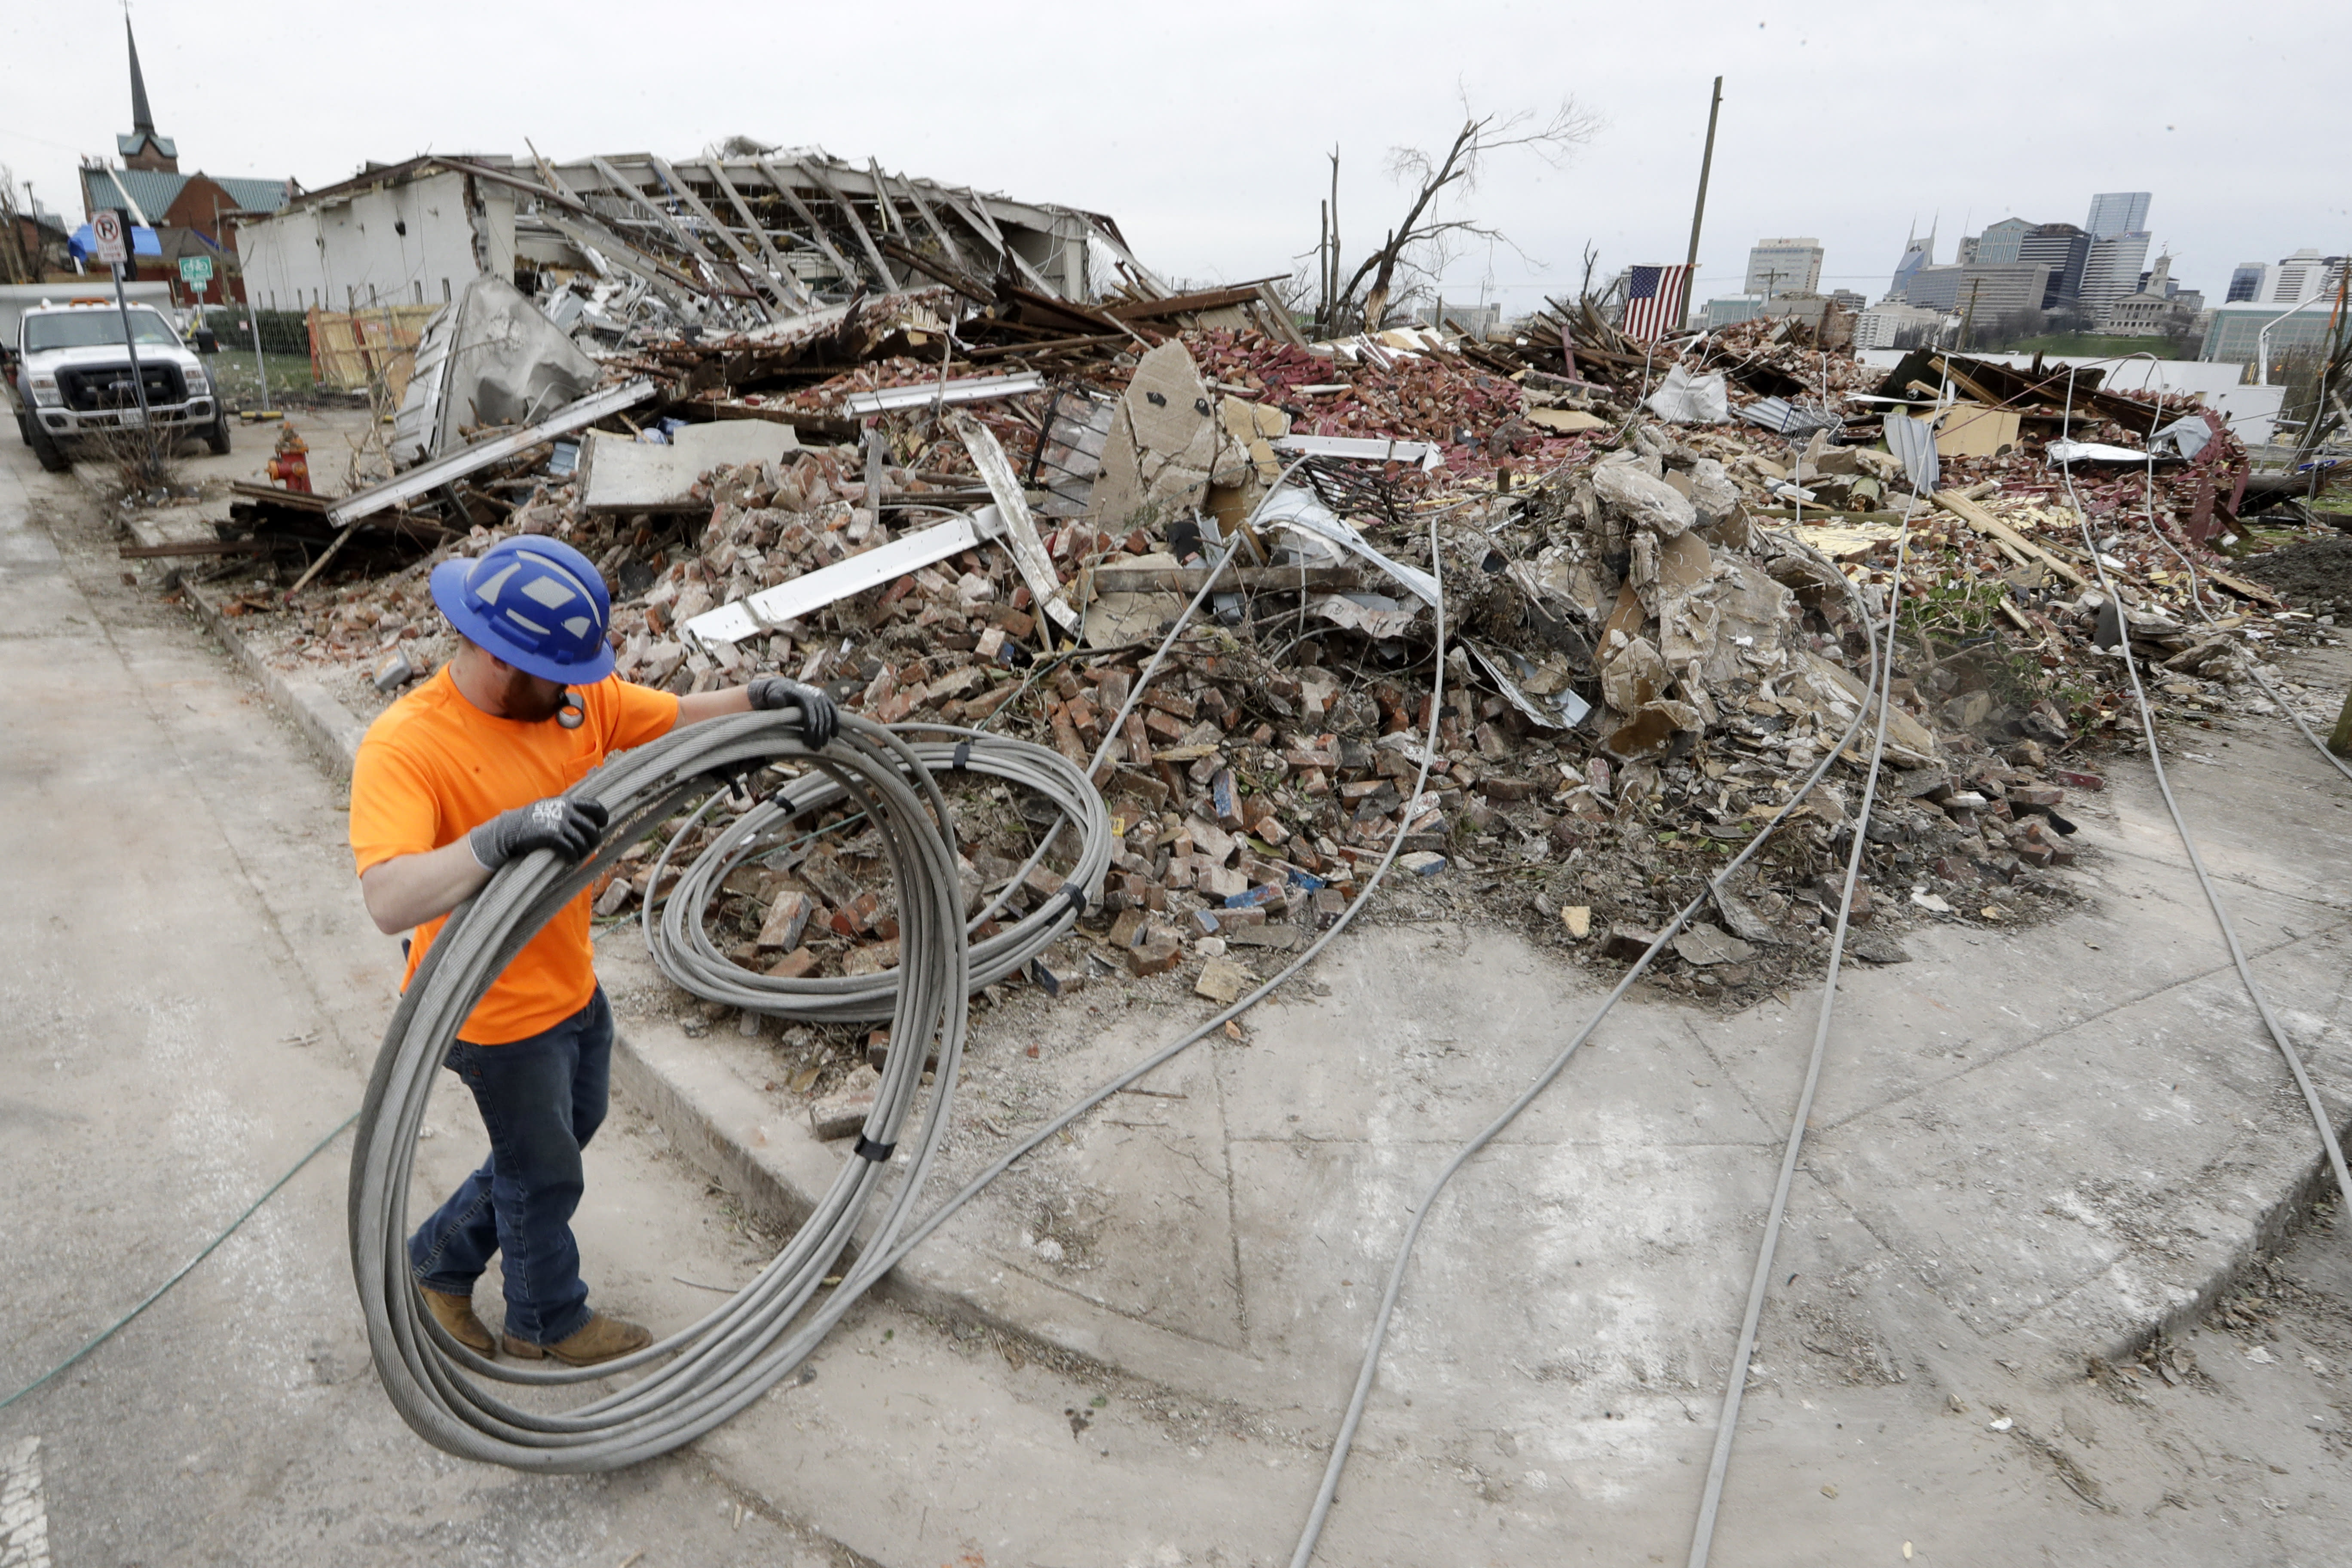 Electrical worker Tyler Morris rolls up damaged power cable Wednesday, March 4, 2020, near a store destroyed by a storm in Nashville, Tenn. After tornadoes hit the state Tuesday, the search for victims continues along with the start of the cleanup from the deadly storms that killed multiple people and left others still missing. (AP Photo/Mark Humphrey)